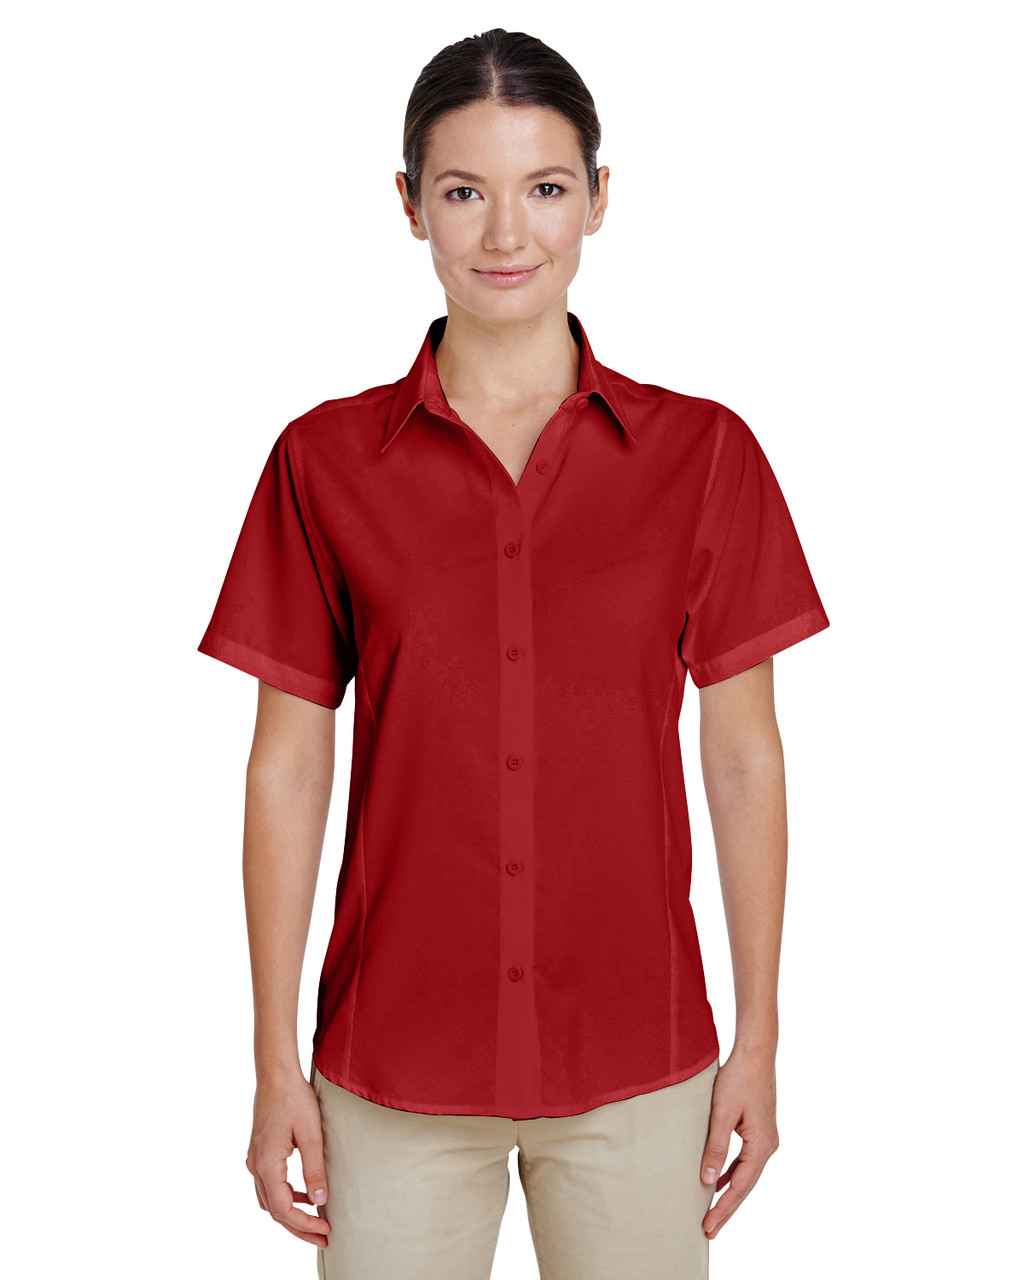 Parrot Red - M610SW Harriton Paradise Short-Sleeve Performance Shirt | BlankClothing.ca